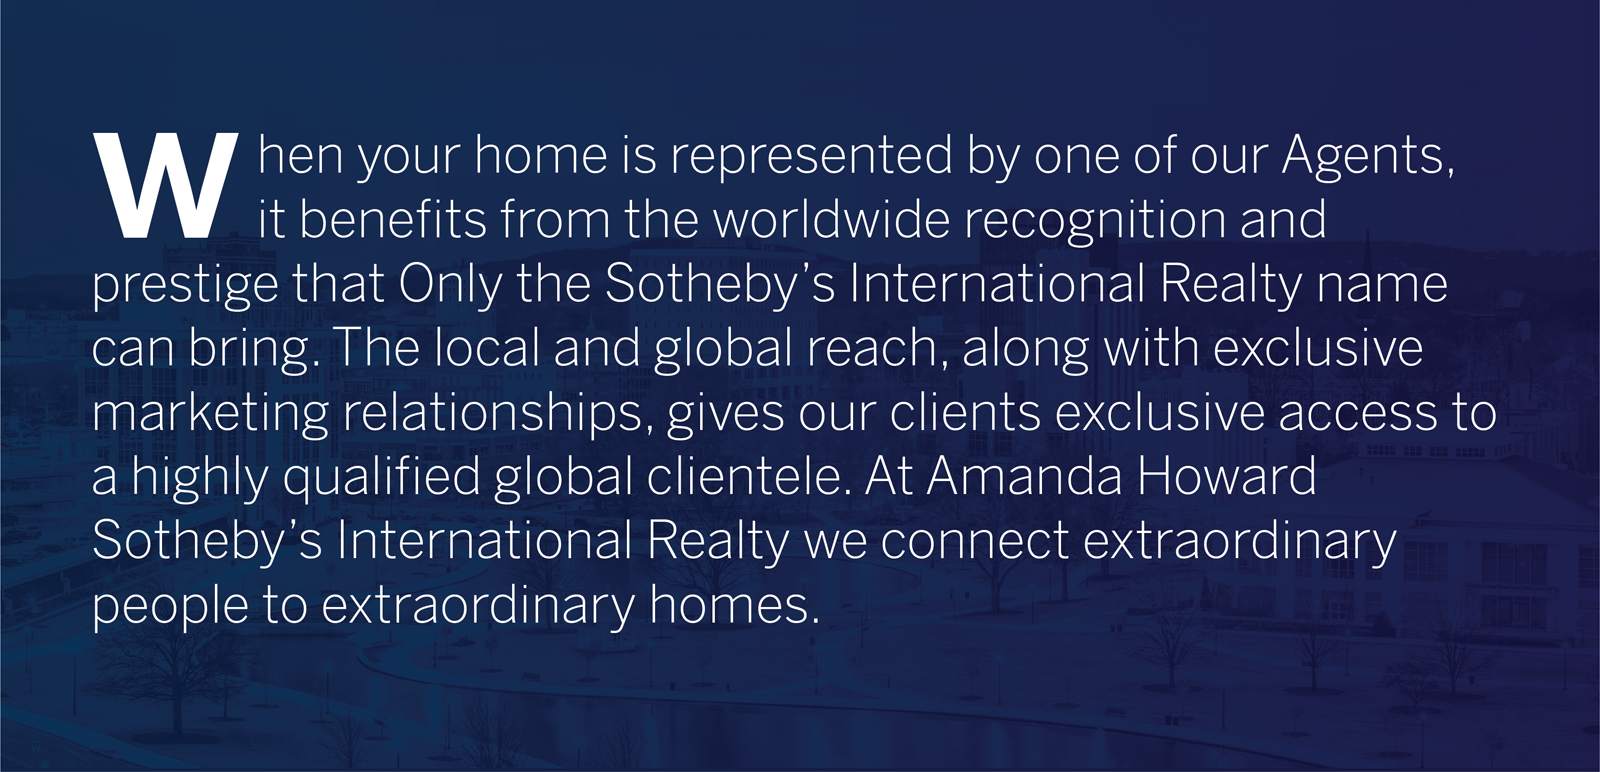 Selling a home with Amanda Howard Sotheby's International Realty